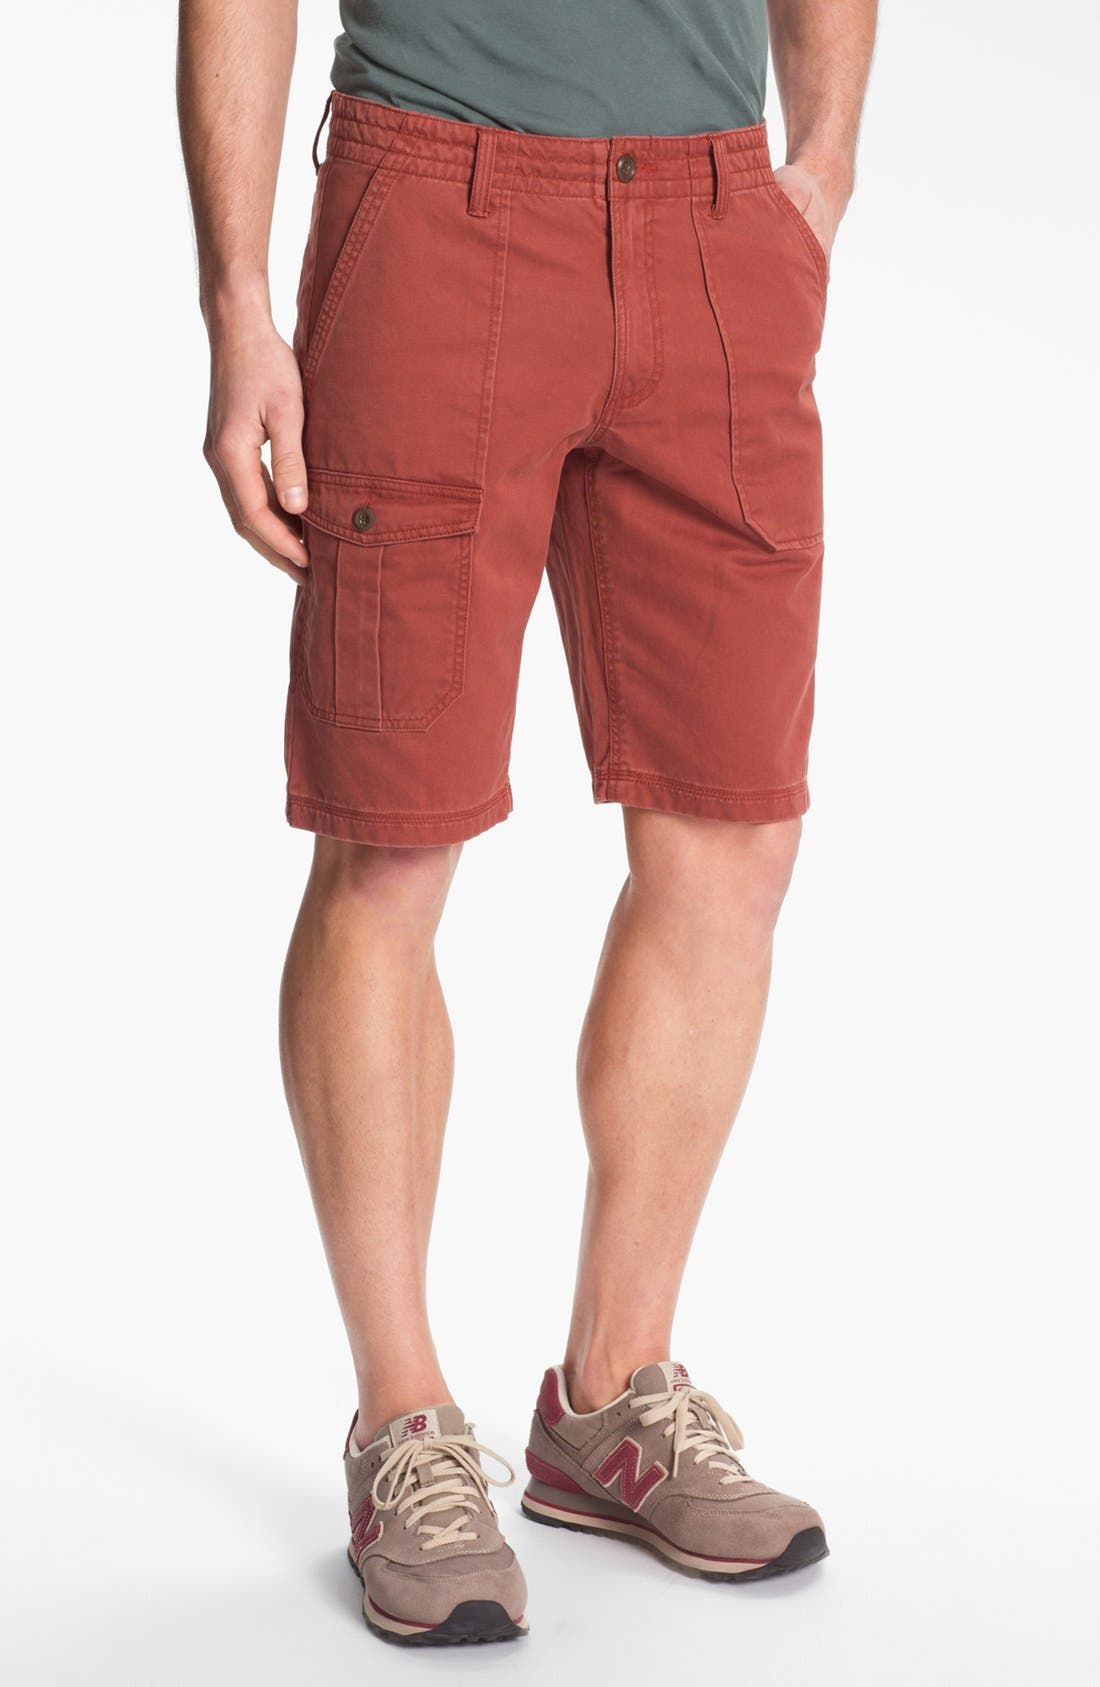 Alternate Image 1 Selected - Public Opinion 'Reef' Camp Shorts